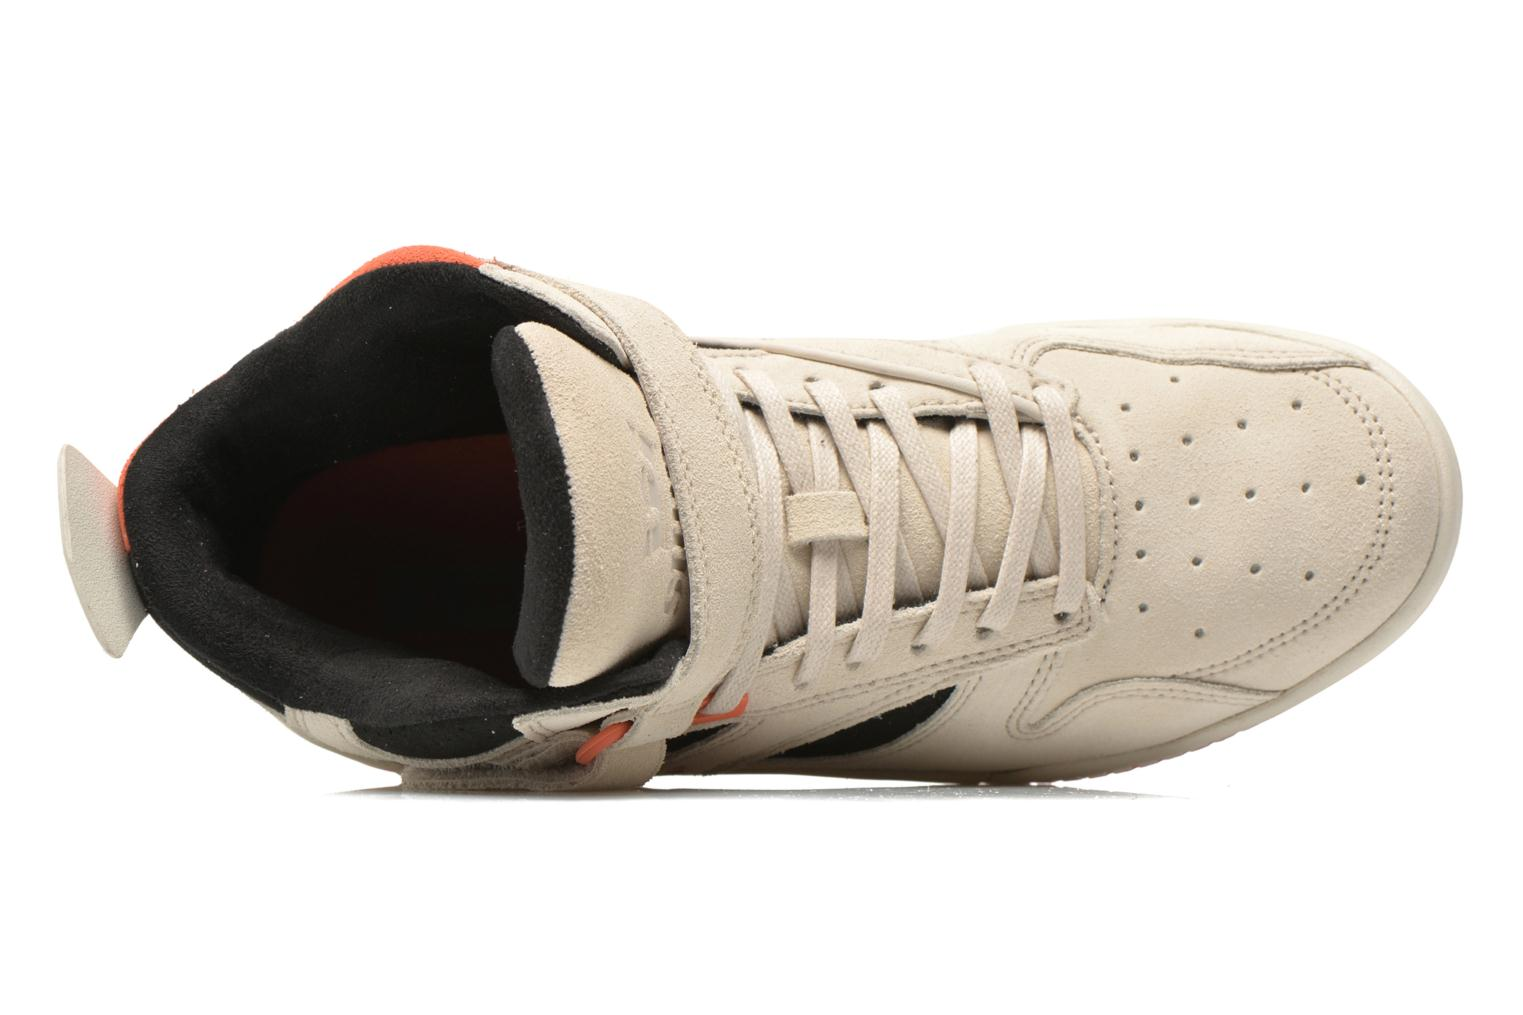 Bleeker Off White/Black/Coral